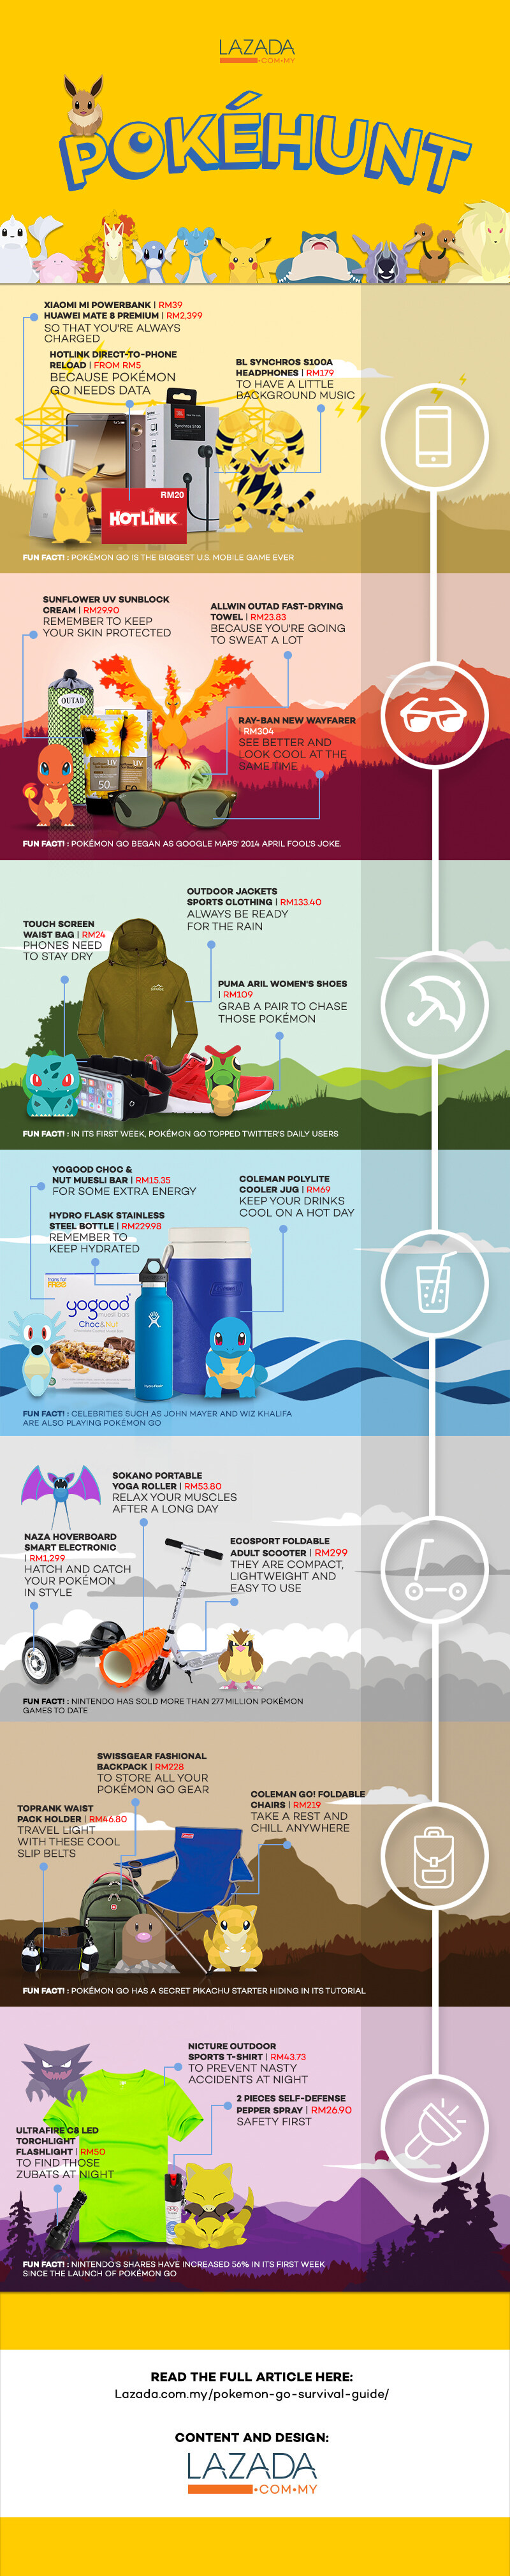 Pokémon Go Survival Guide by Lazada